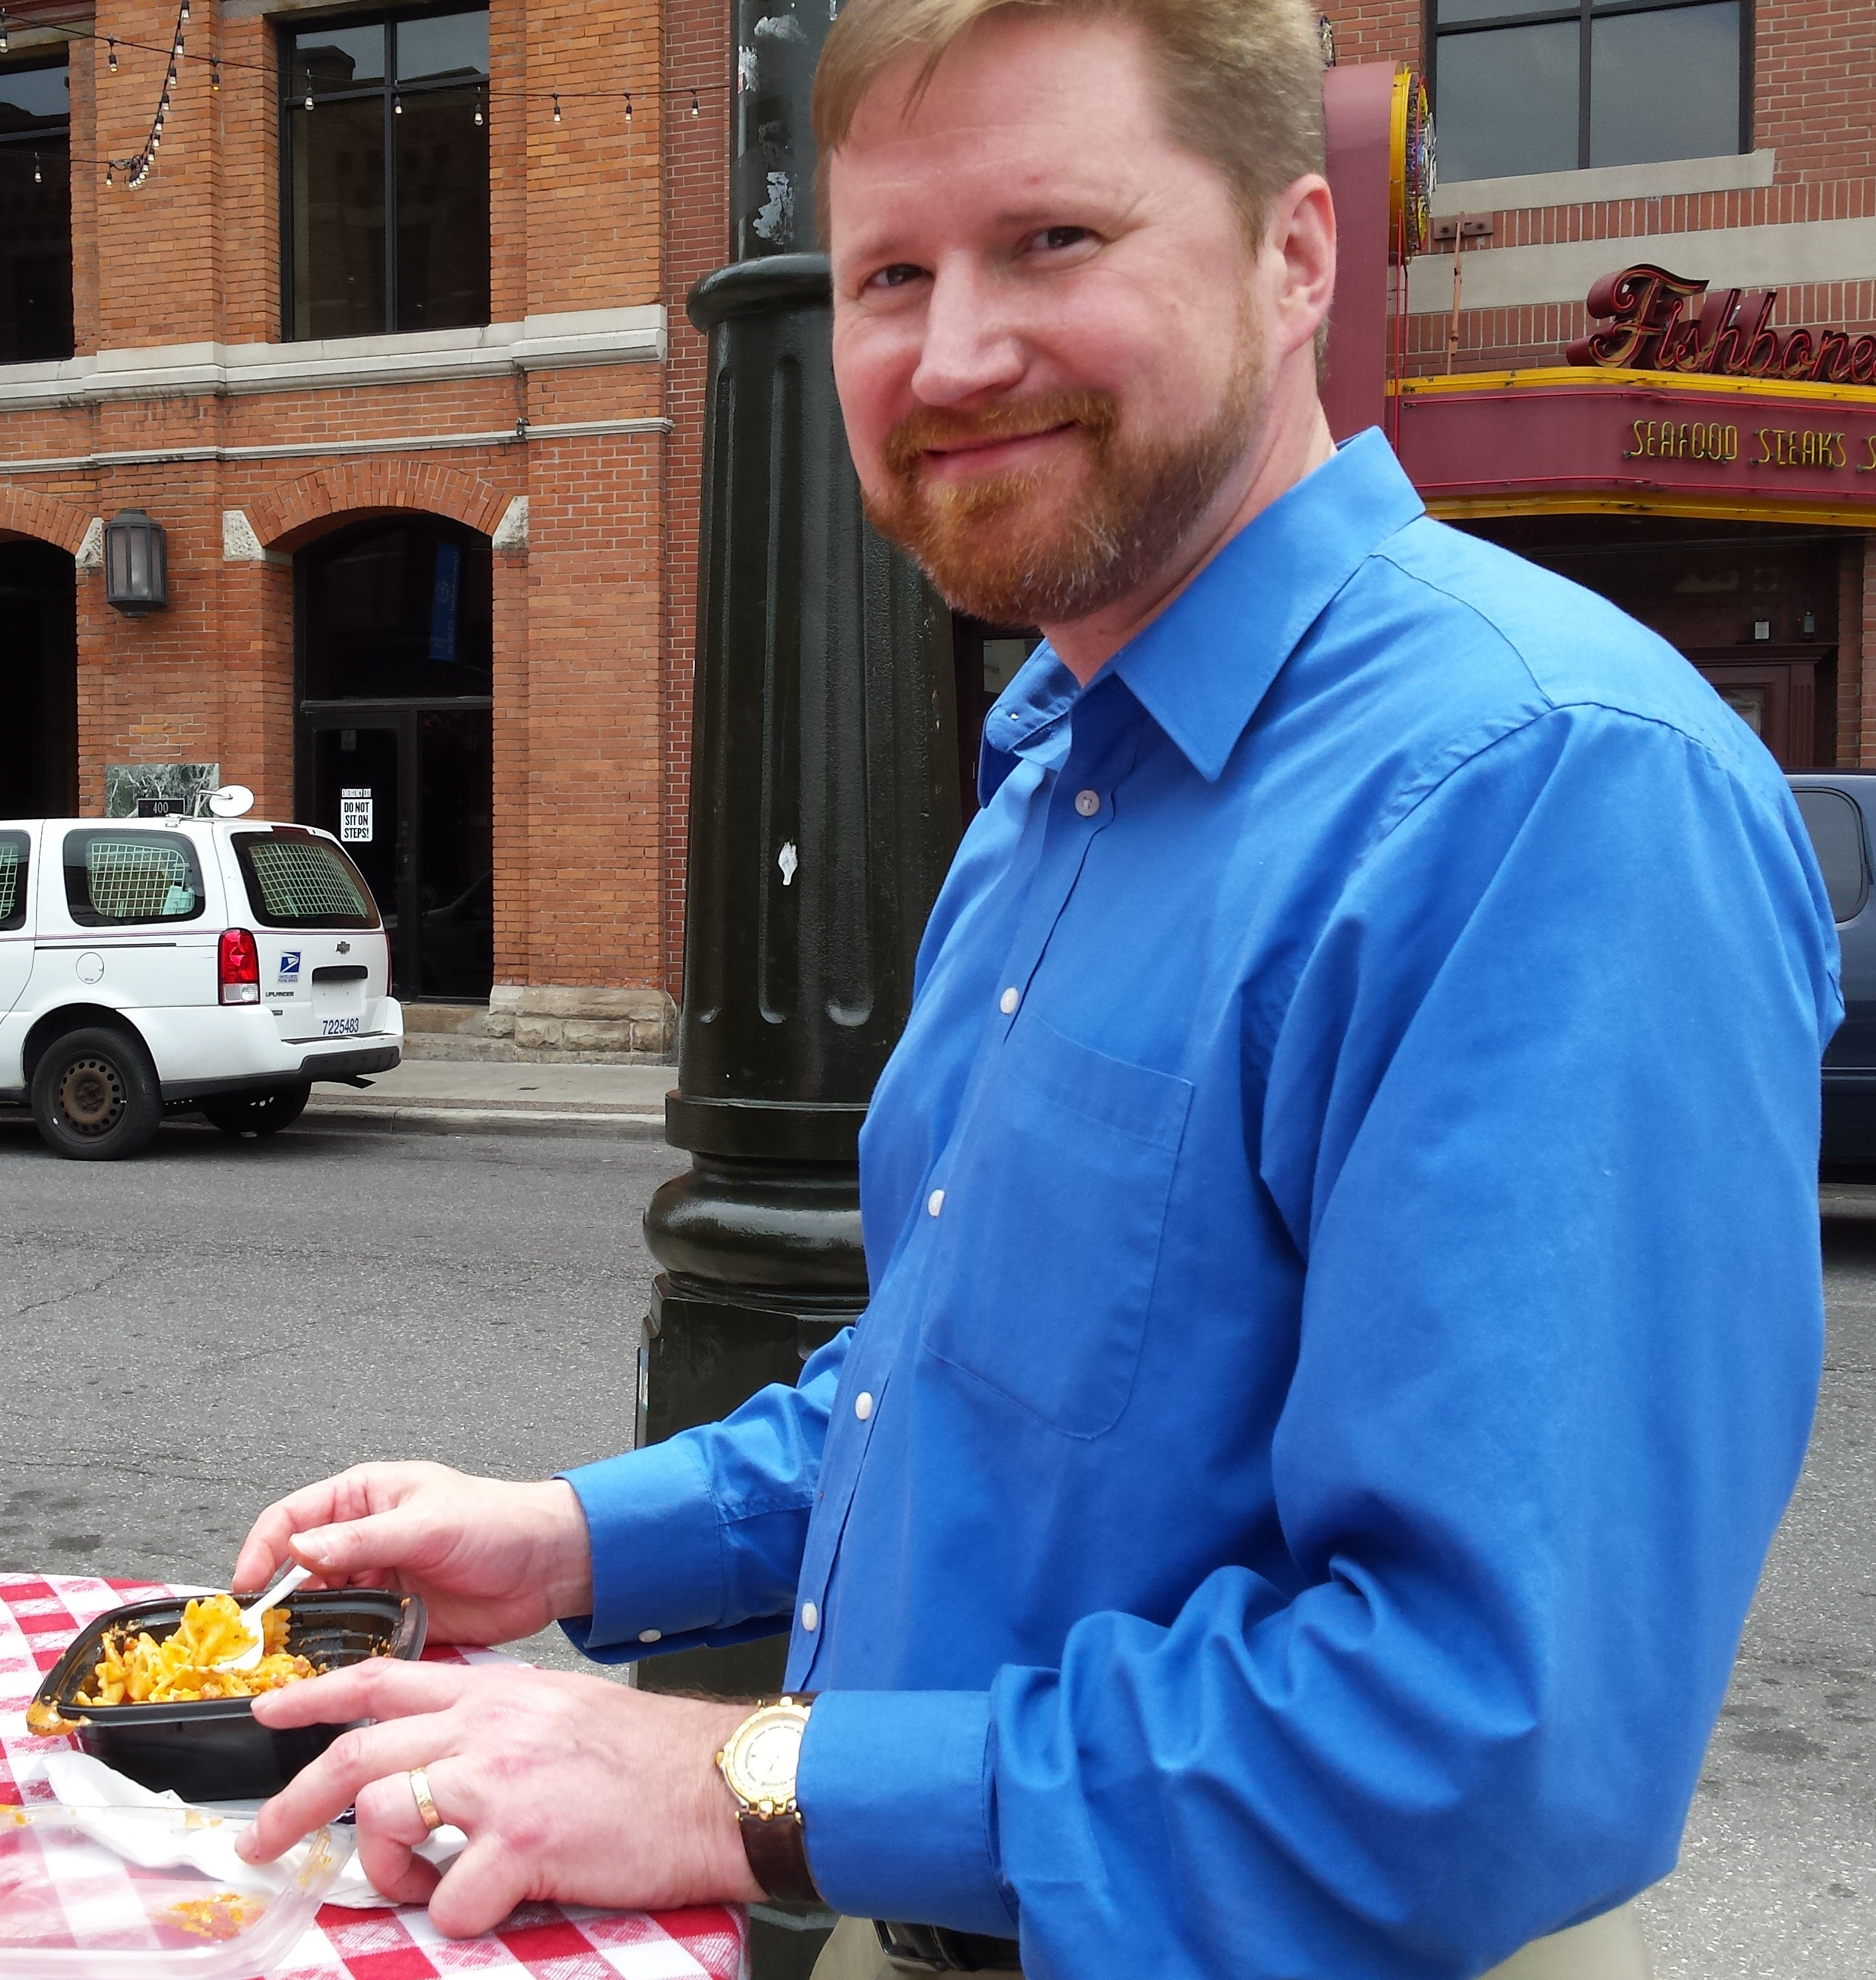 Dan Lawrence ordered the pasta bowl with meatballs. He heard of the food truck on WJR.